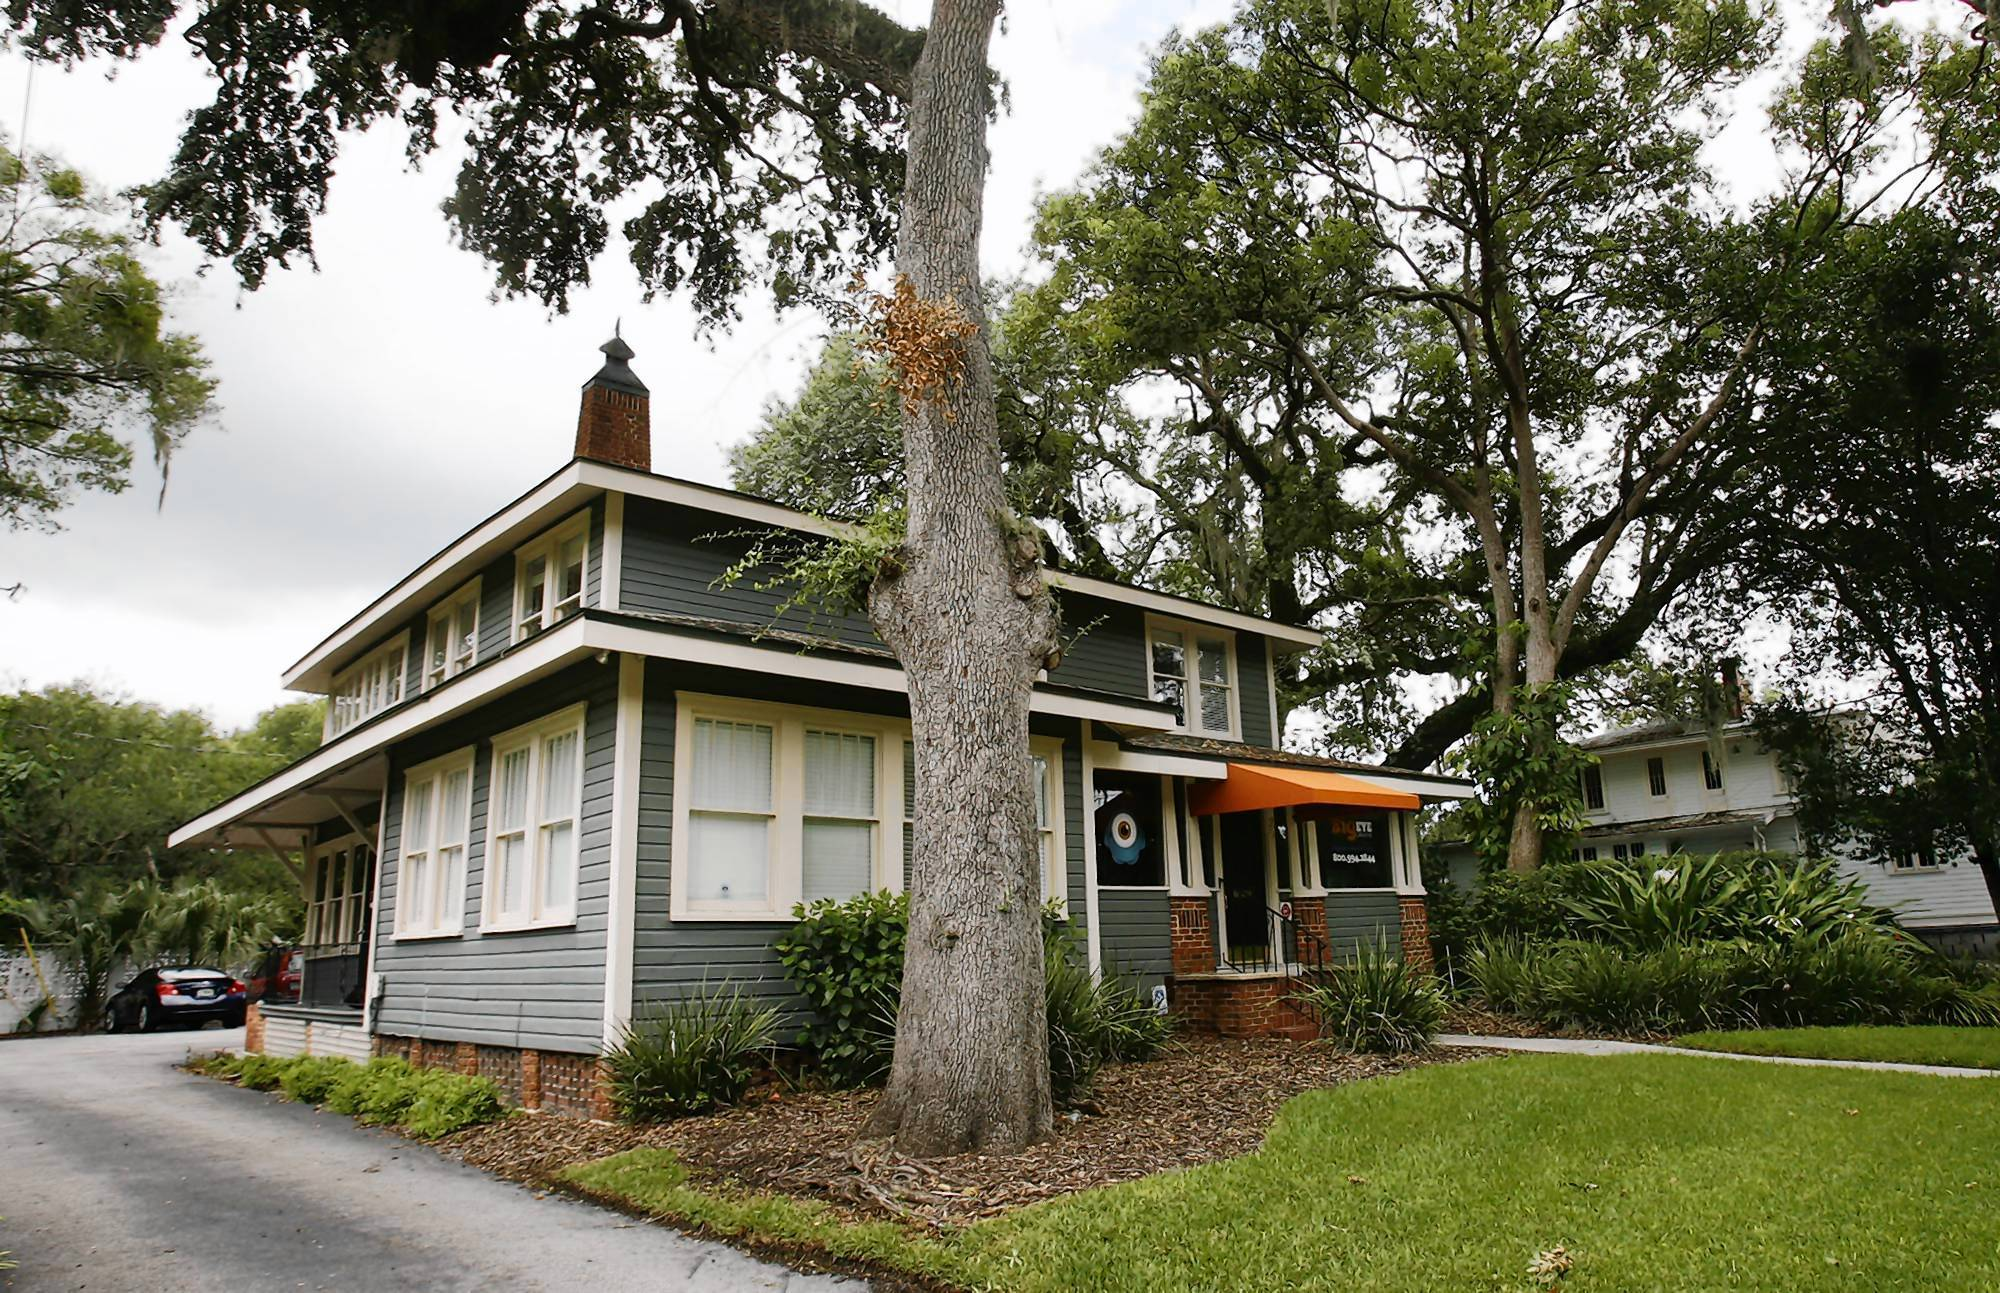 These houses, at 20 N. Eola Drive, left, and 538 E. Washington St., are among those that will make way for a bigger Lake Eola Park. (Stephen M. Dowell/Orlando Sentinel file)